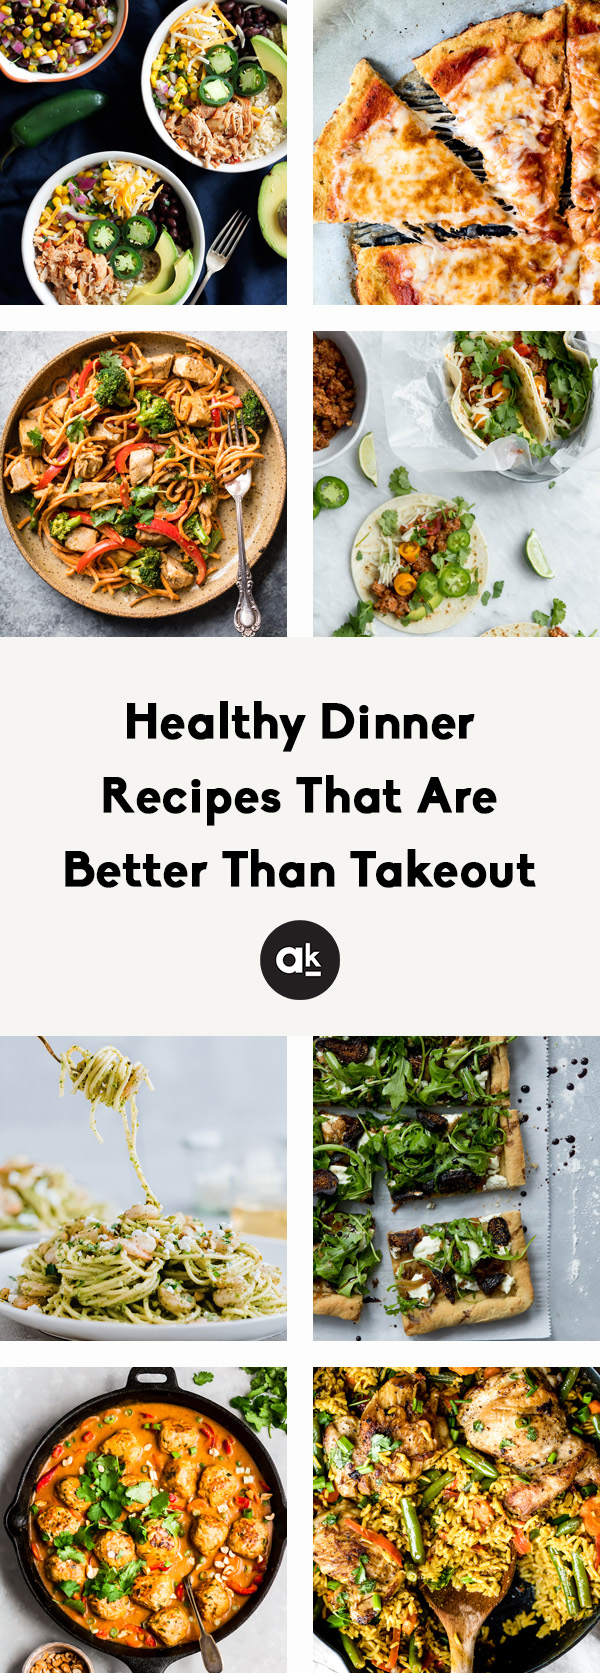 Homemade healthy dinner recipes that are seriously better than takeout! These healthy twists on your favorite takeout dinners are easy to make, packed with flavor, and perfect for sharing or meal prepping for your week.